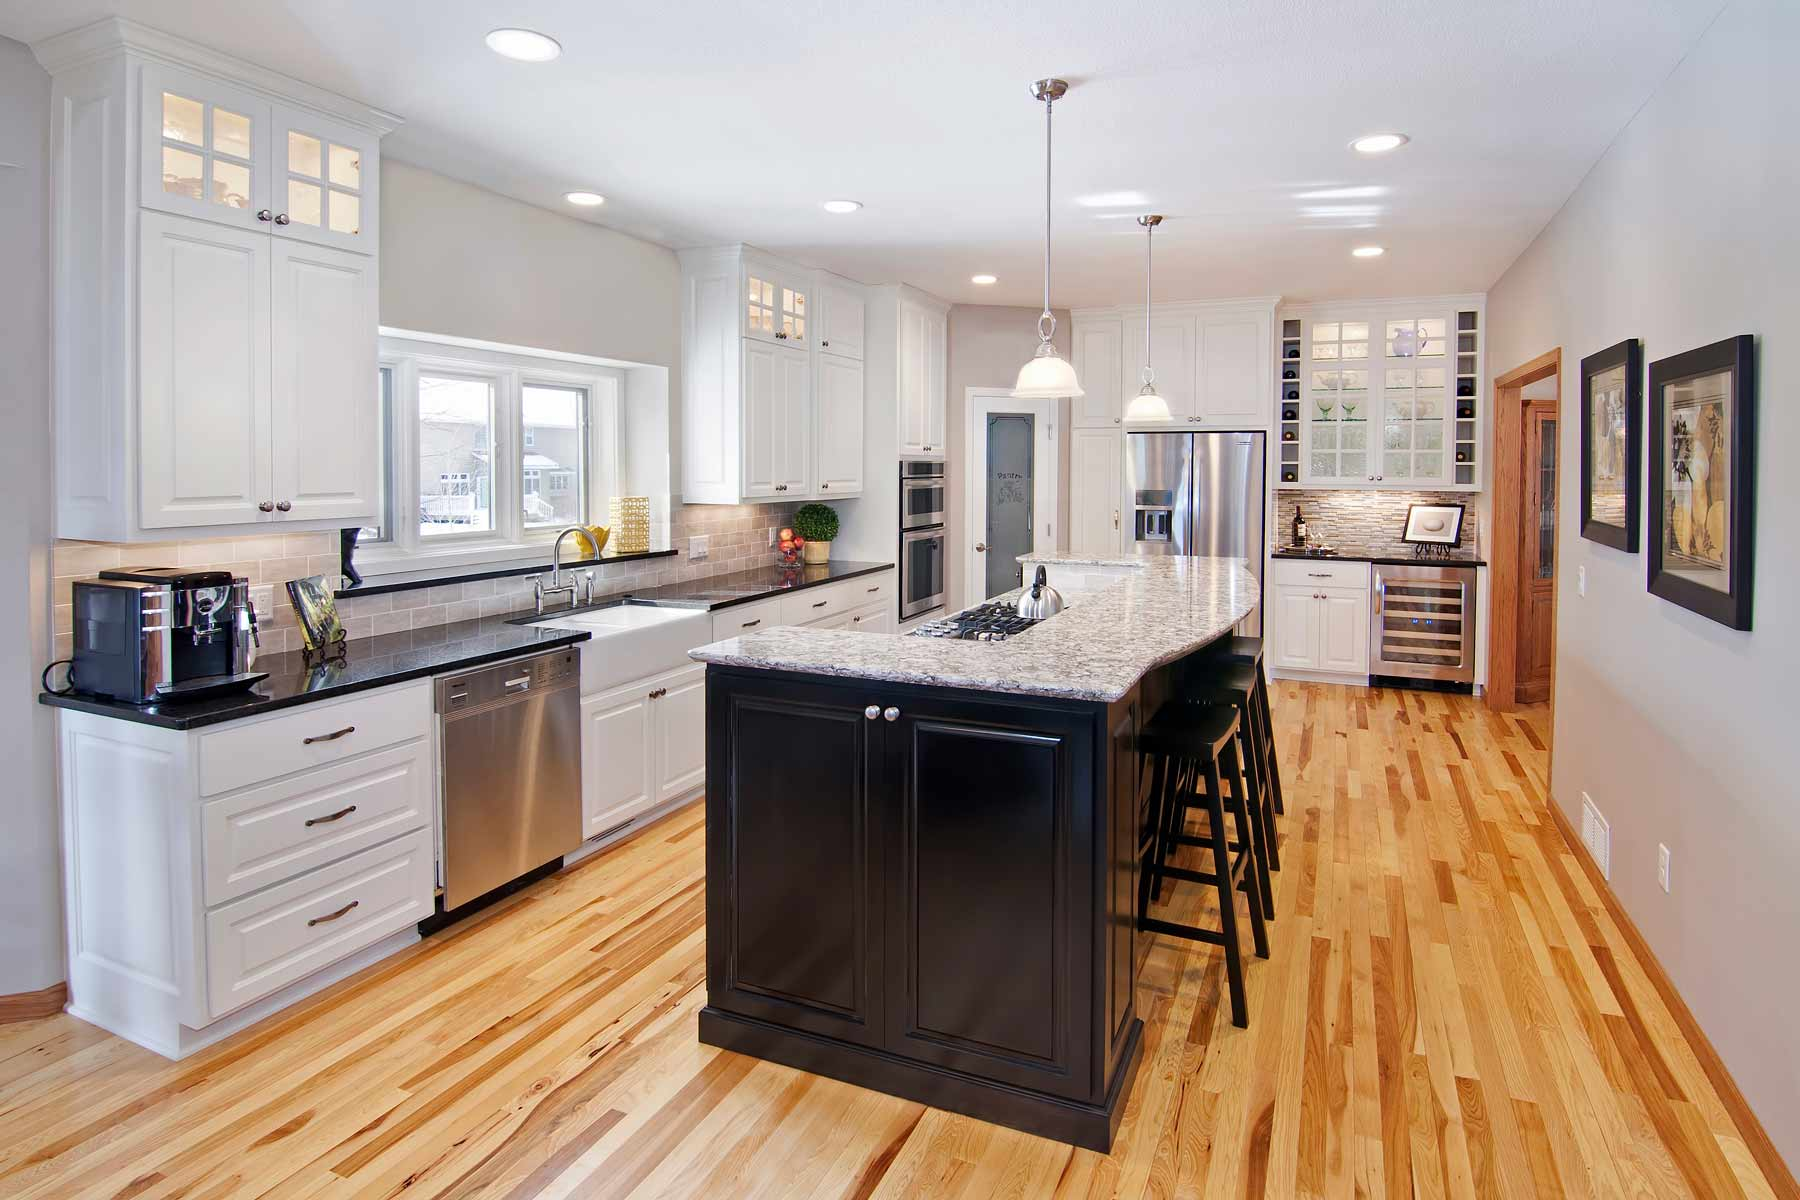 Kitchen-Remodeling-MN - James Barton Design-Build